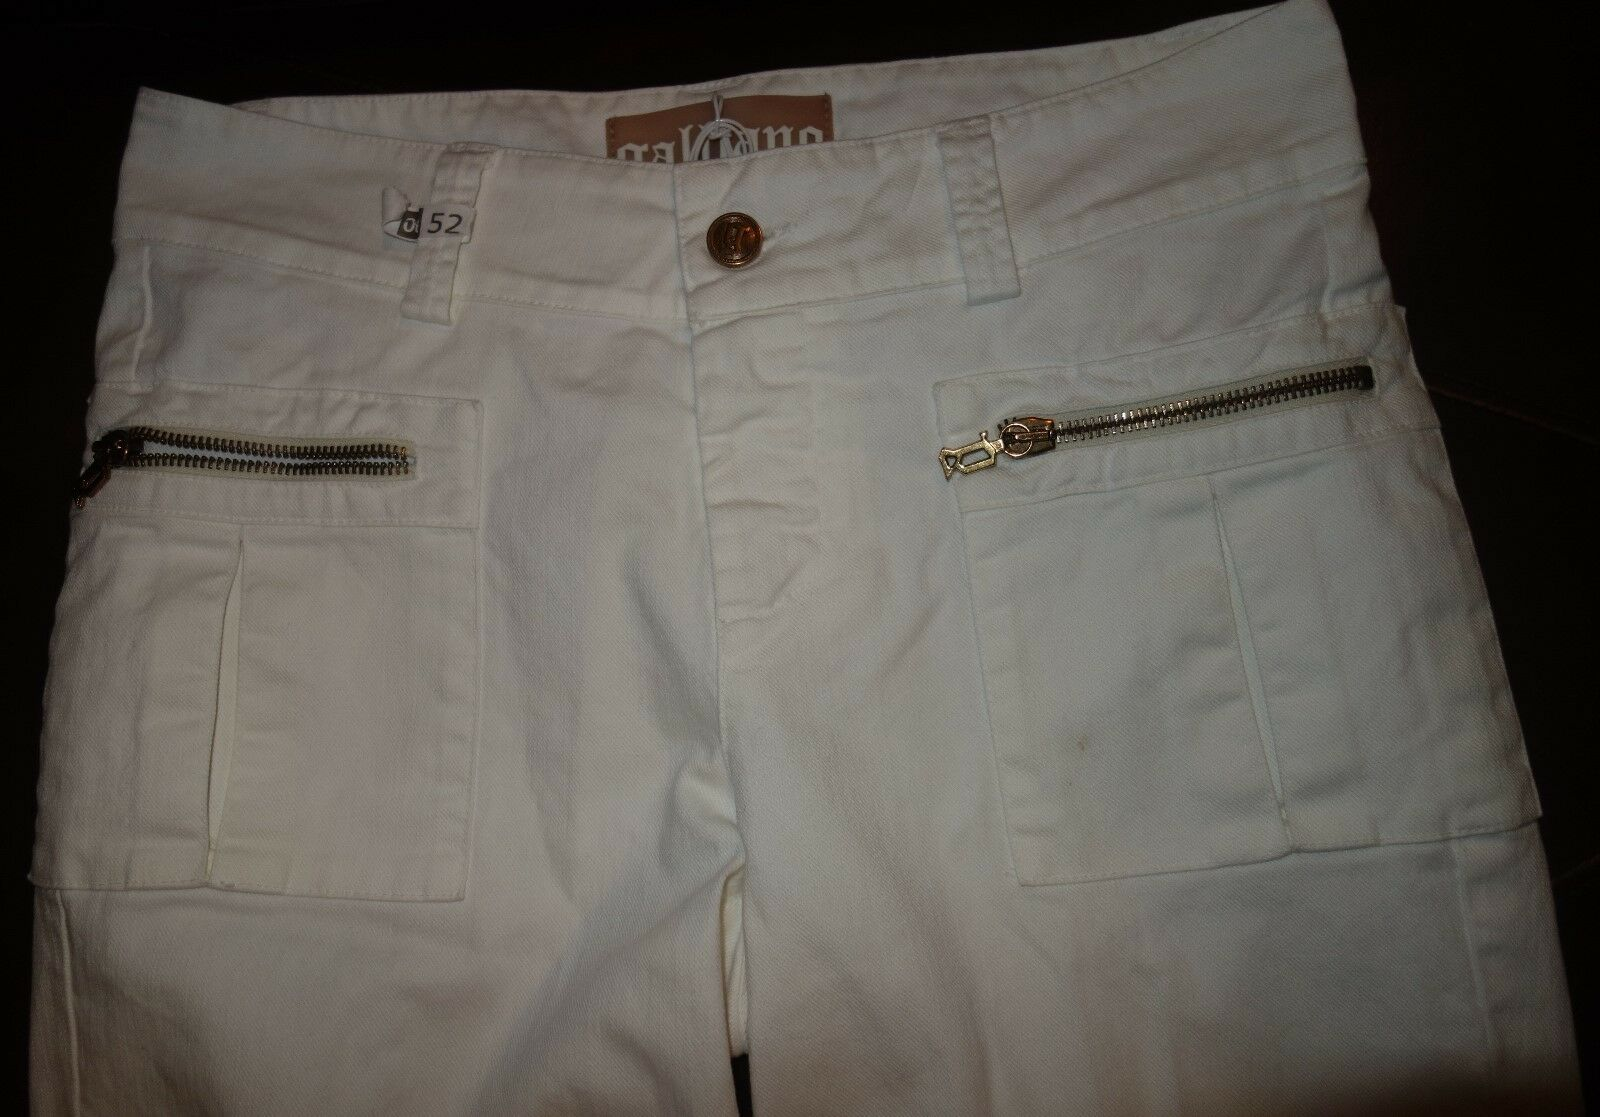 GALLIANO CLASSIC CASUAL JEANS SIZE 26  40 NEW